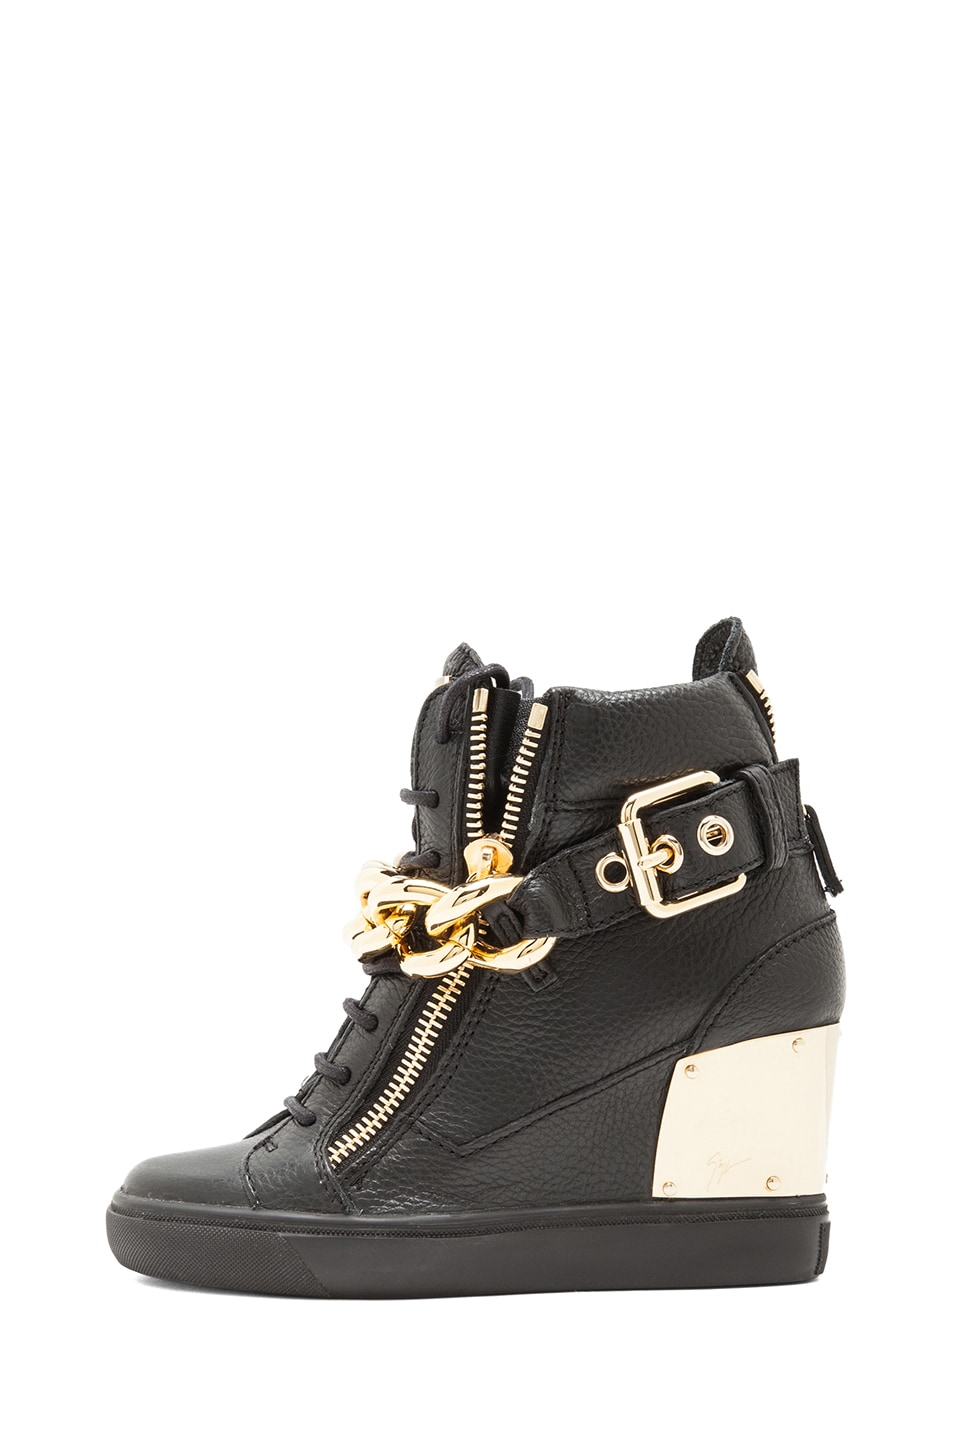 Image 1 of Giuseppe Zanotti Lorenz Grained Leather Wedge Sneakers with Chain in Black